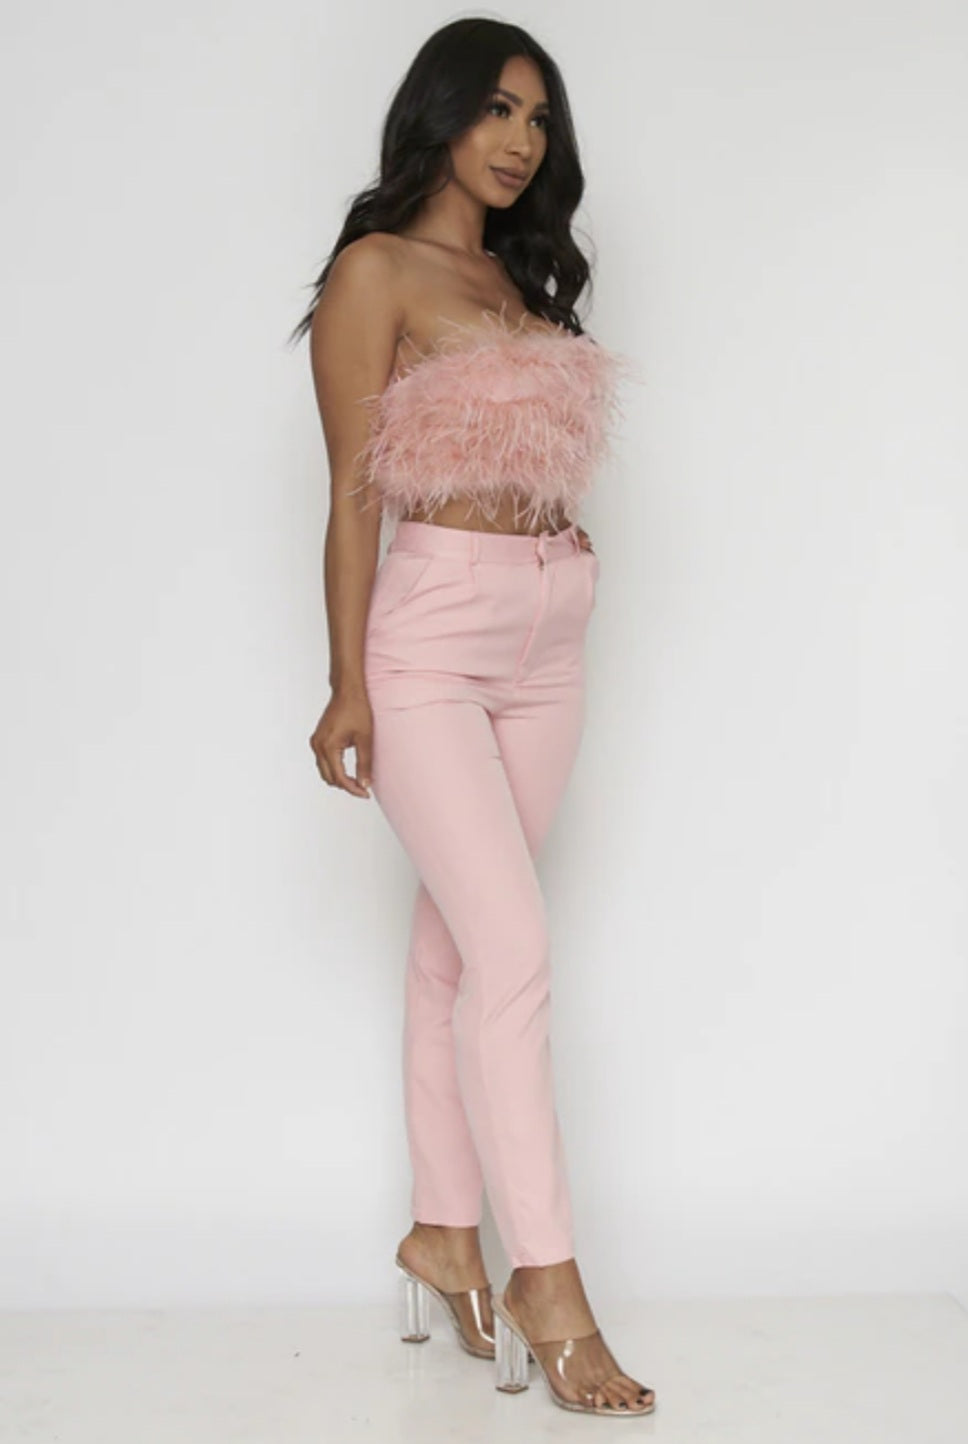 Women's Pink Feathered Tube Top & Pants Set